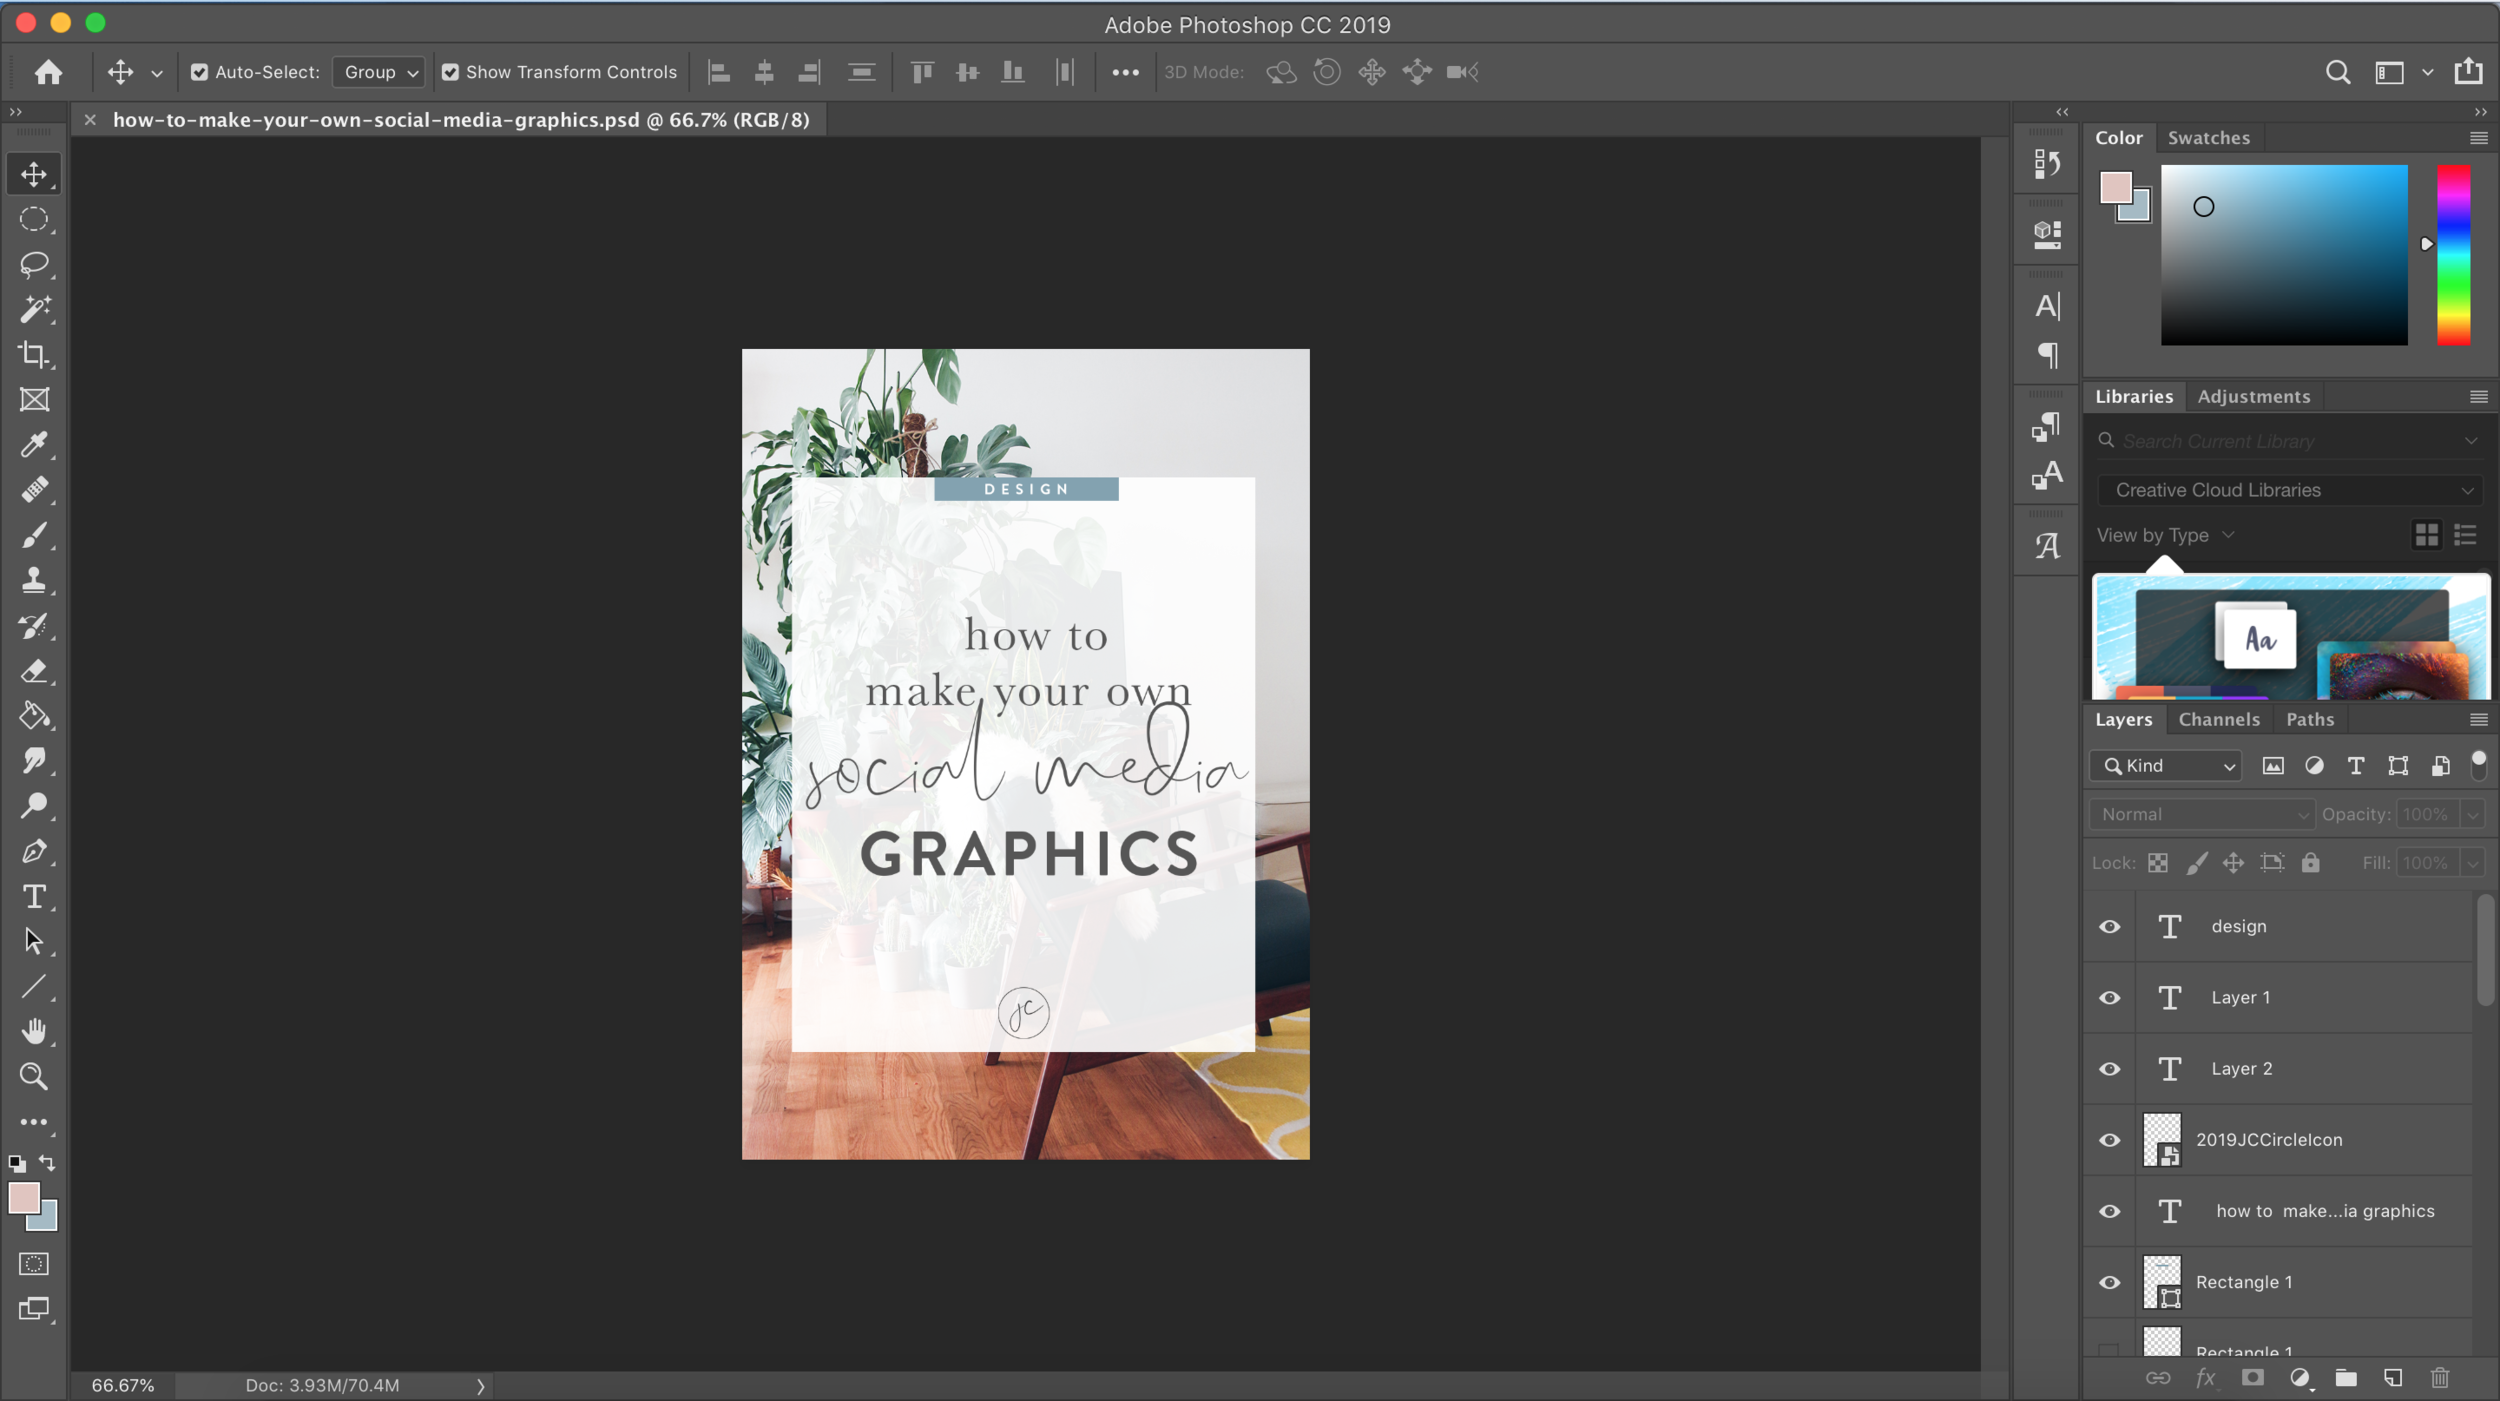 How to Make Your Own Social Media Graphics | Photoshop